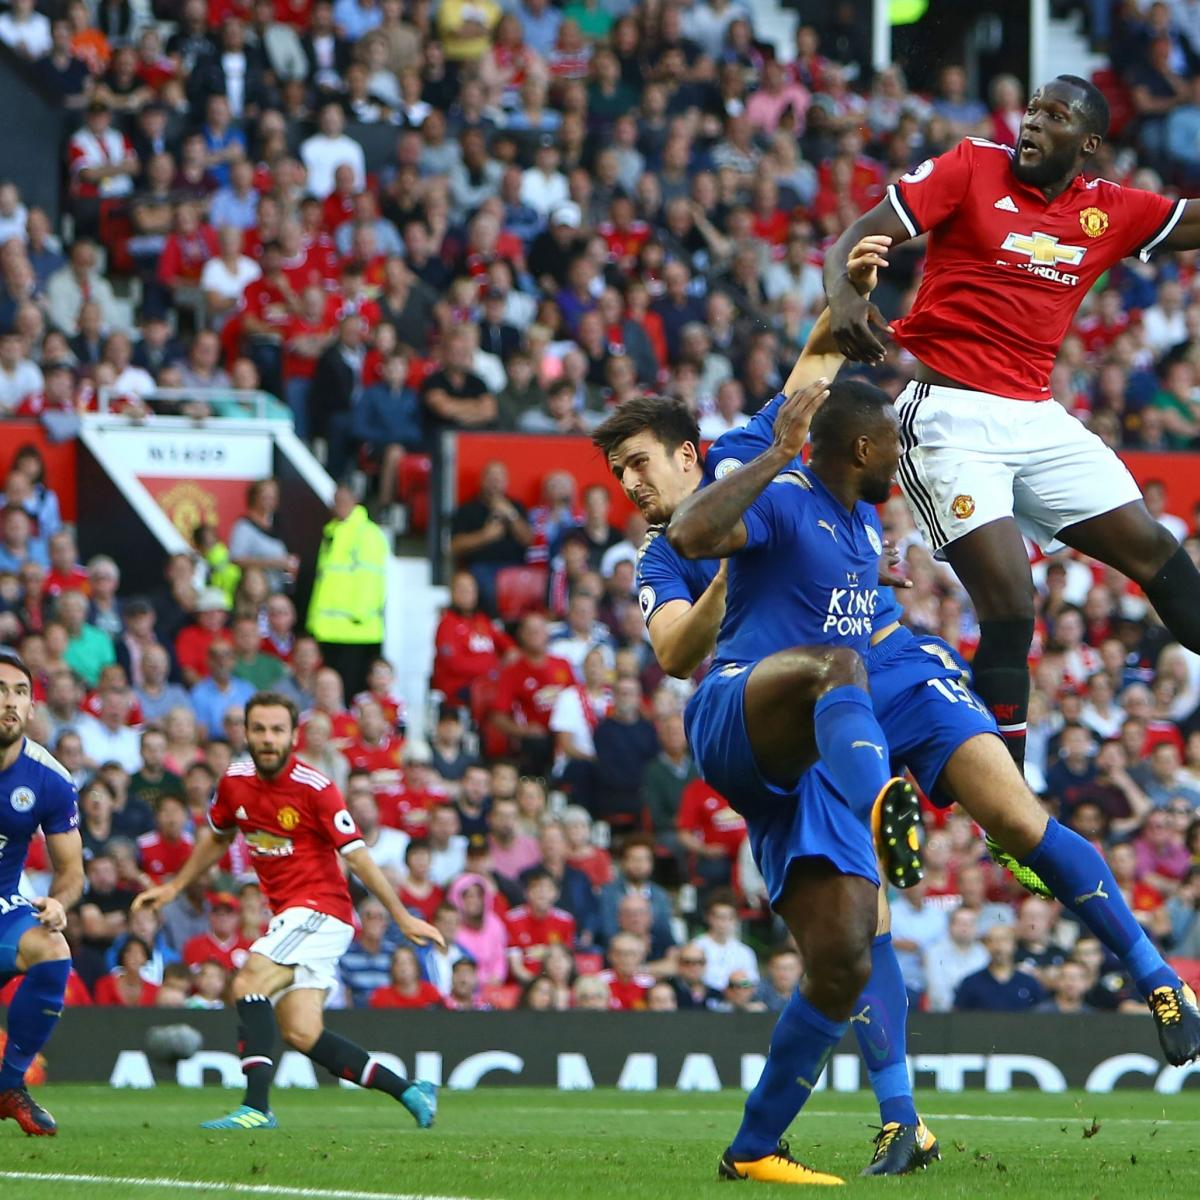 Manchester United beat Leicester City - live sport